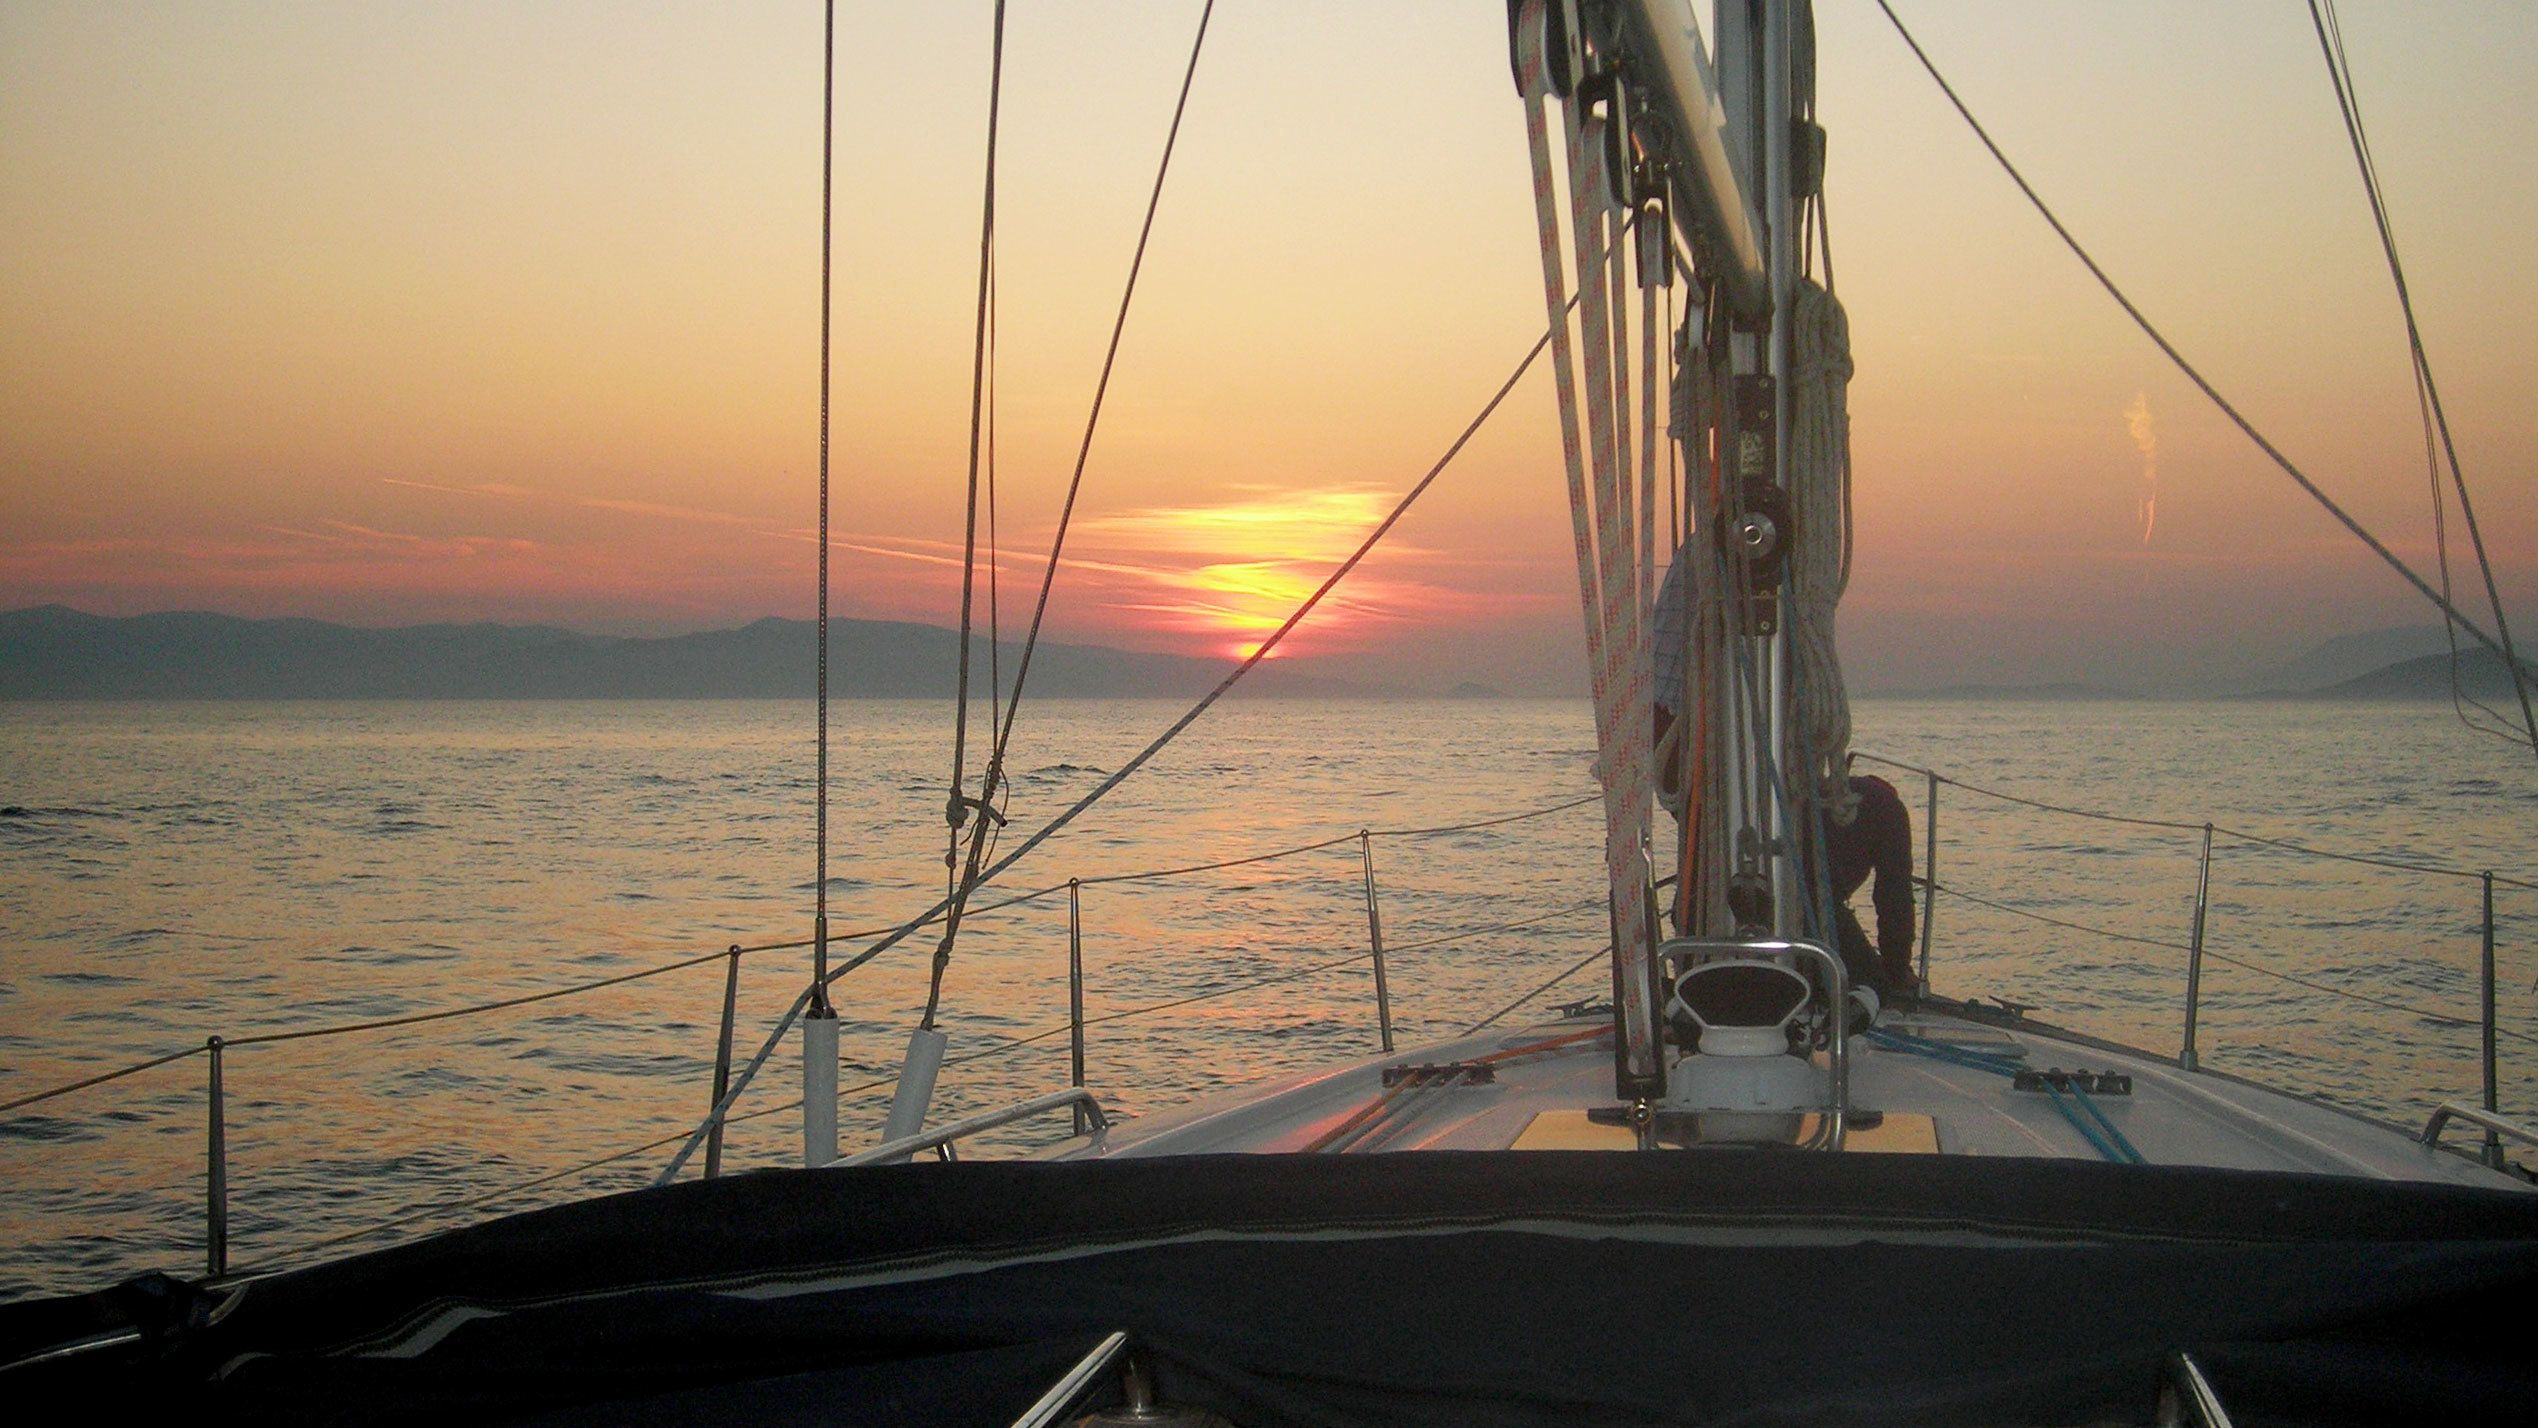 View from the bow of a ship at sunset on the water in Mykonos